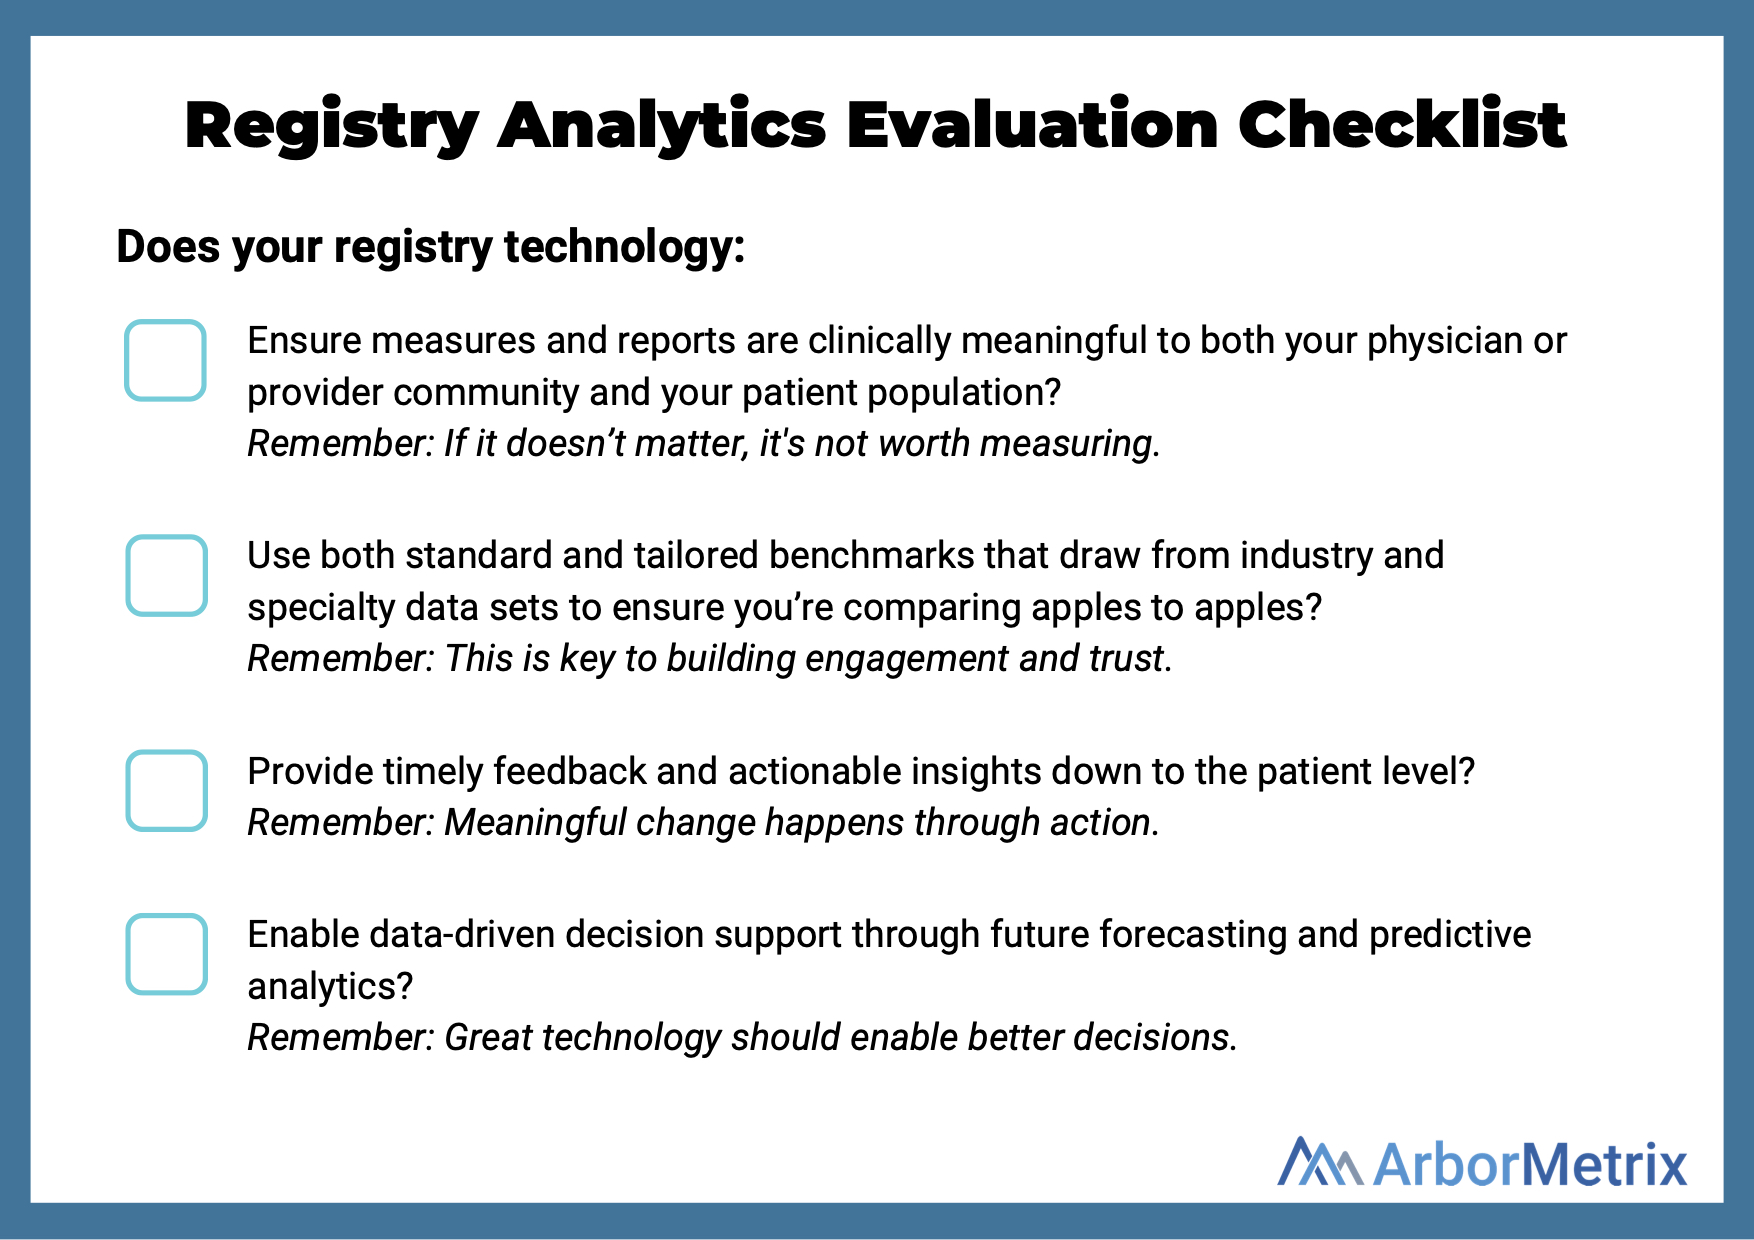 Registry Analytics Evaluation Checklist